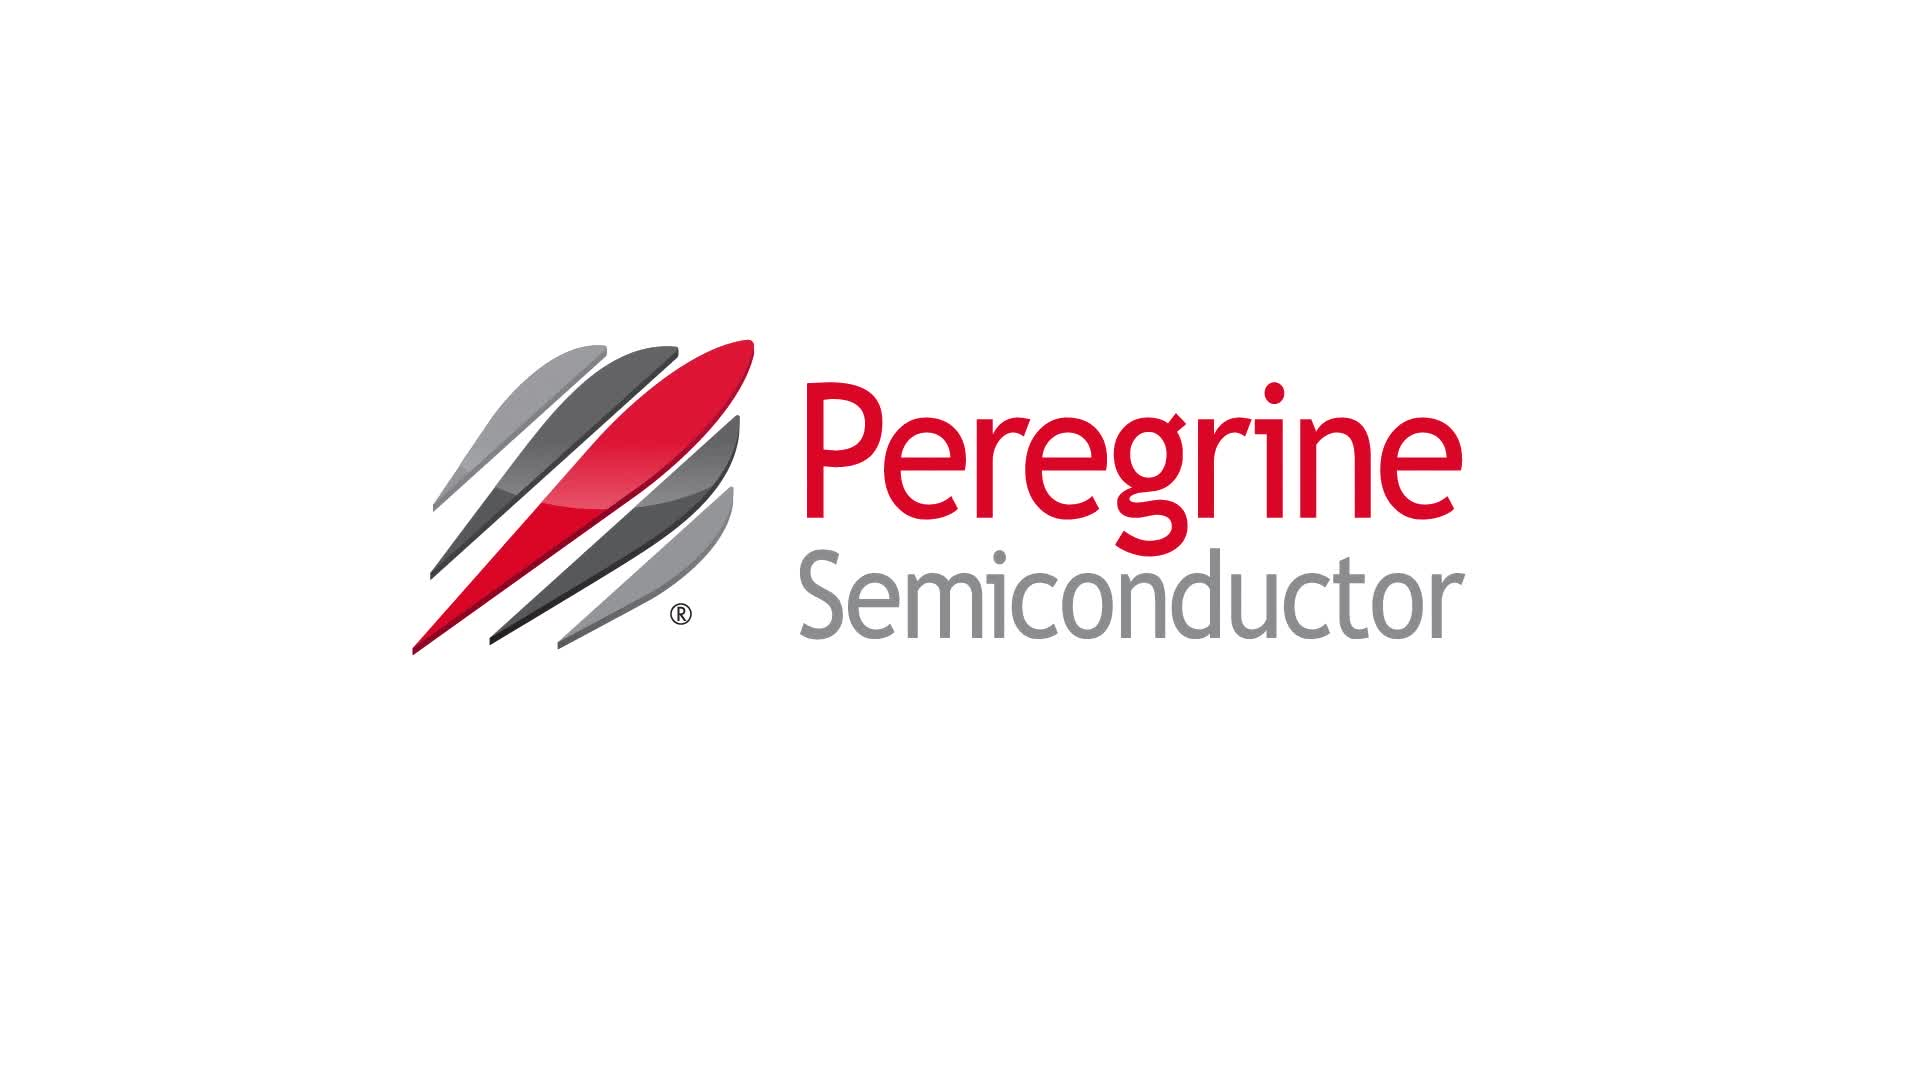 Peregrine's UltraCMOS(R) MPAC–Doherty portfolio now extends from 1.8 to 3.8 GHz with three pin-compatible products—the PE46120, PE46130 and PE46140.